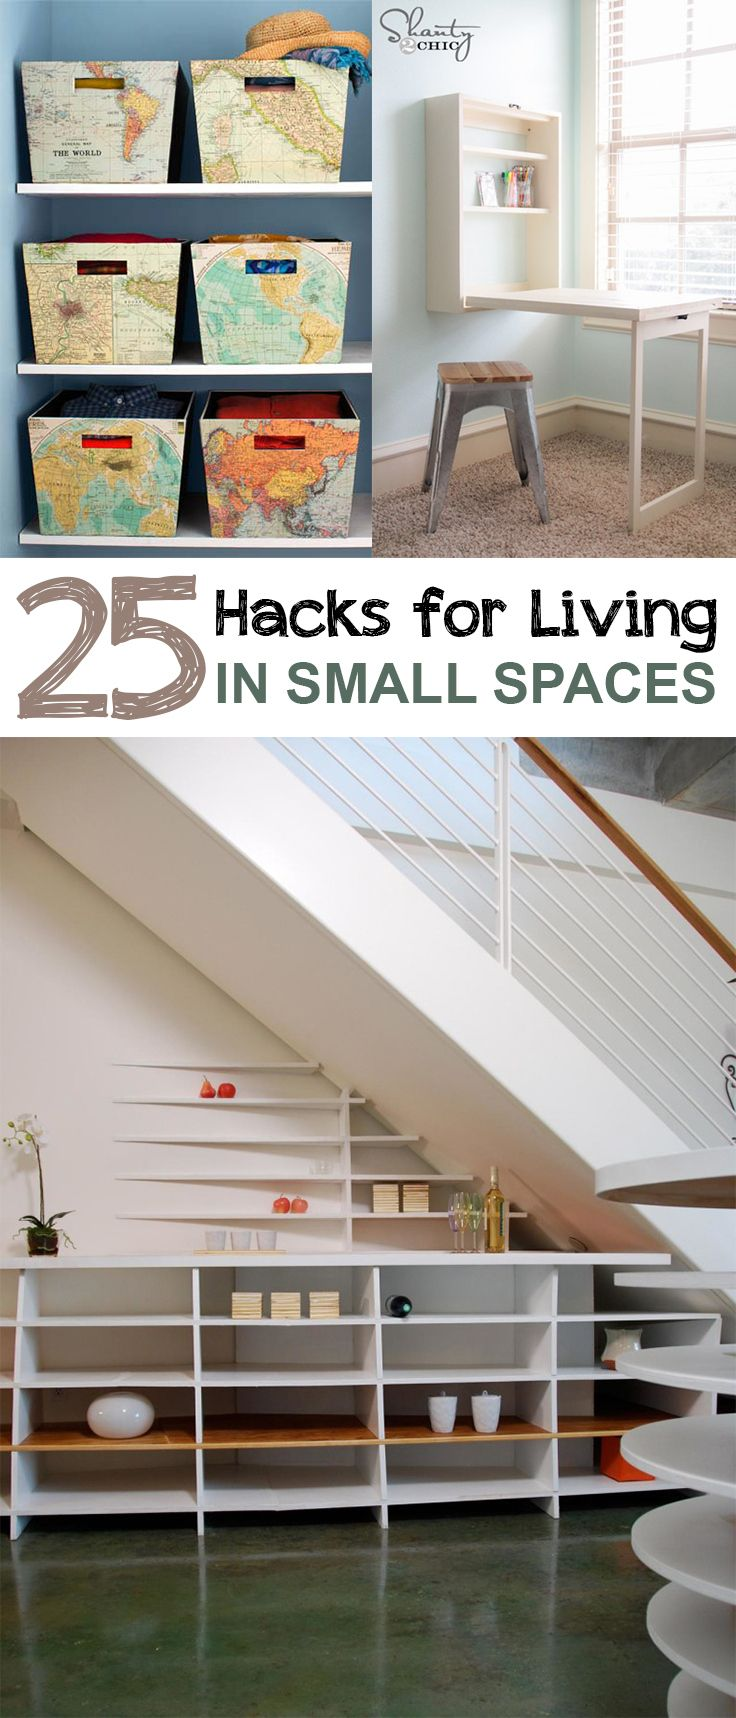 25 hacks for living in small spaces storage bins for Small space living hacks